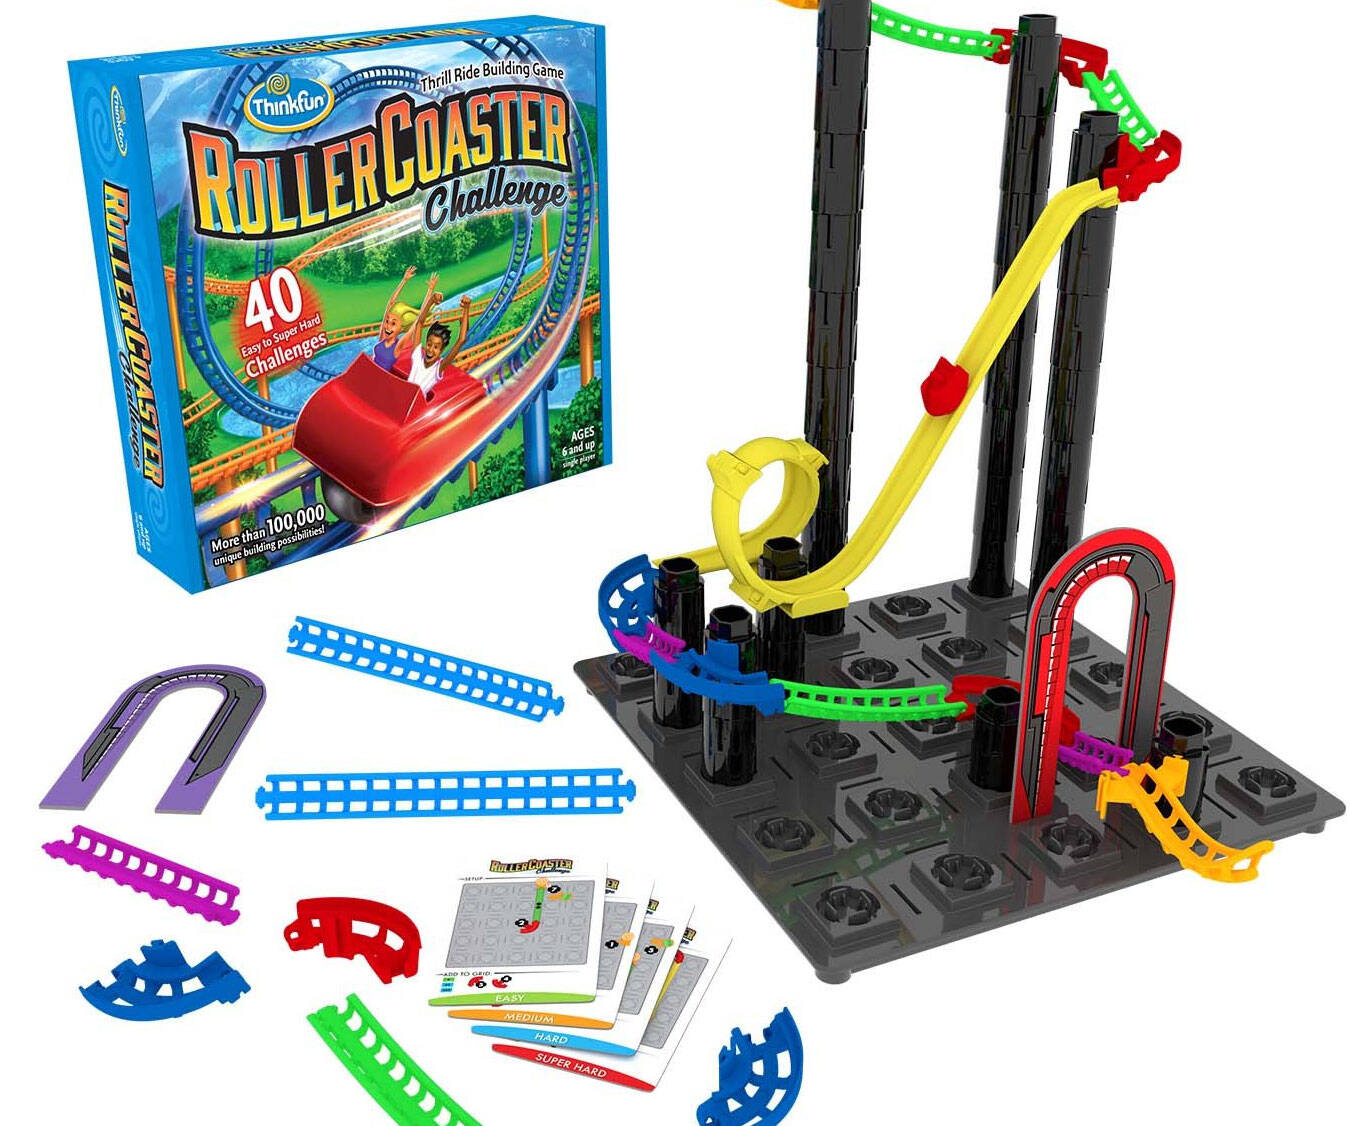 Roller Coaster Logic & Building Game - http://coolthings.us